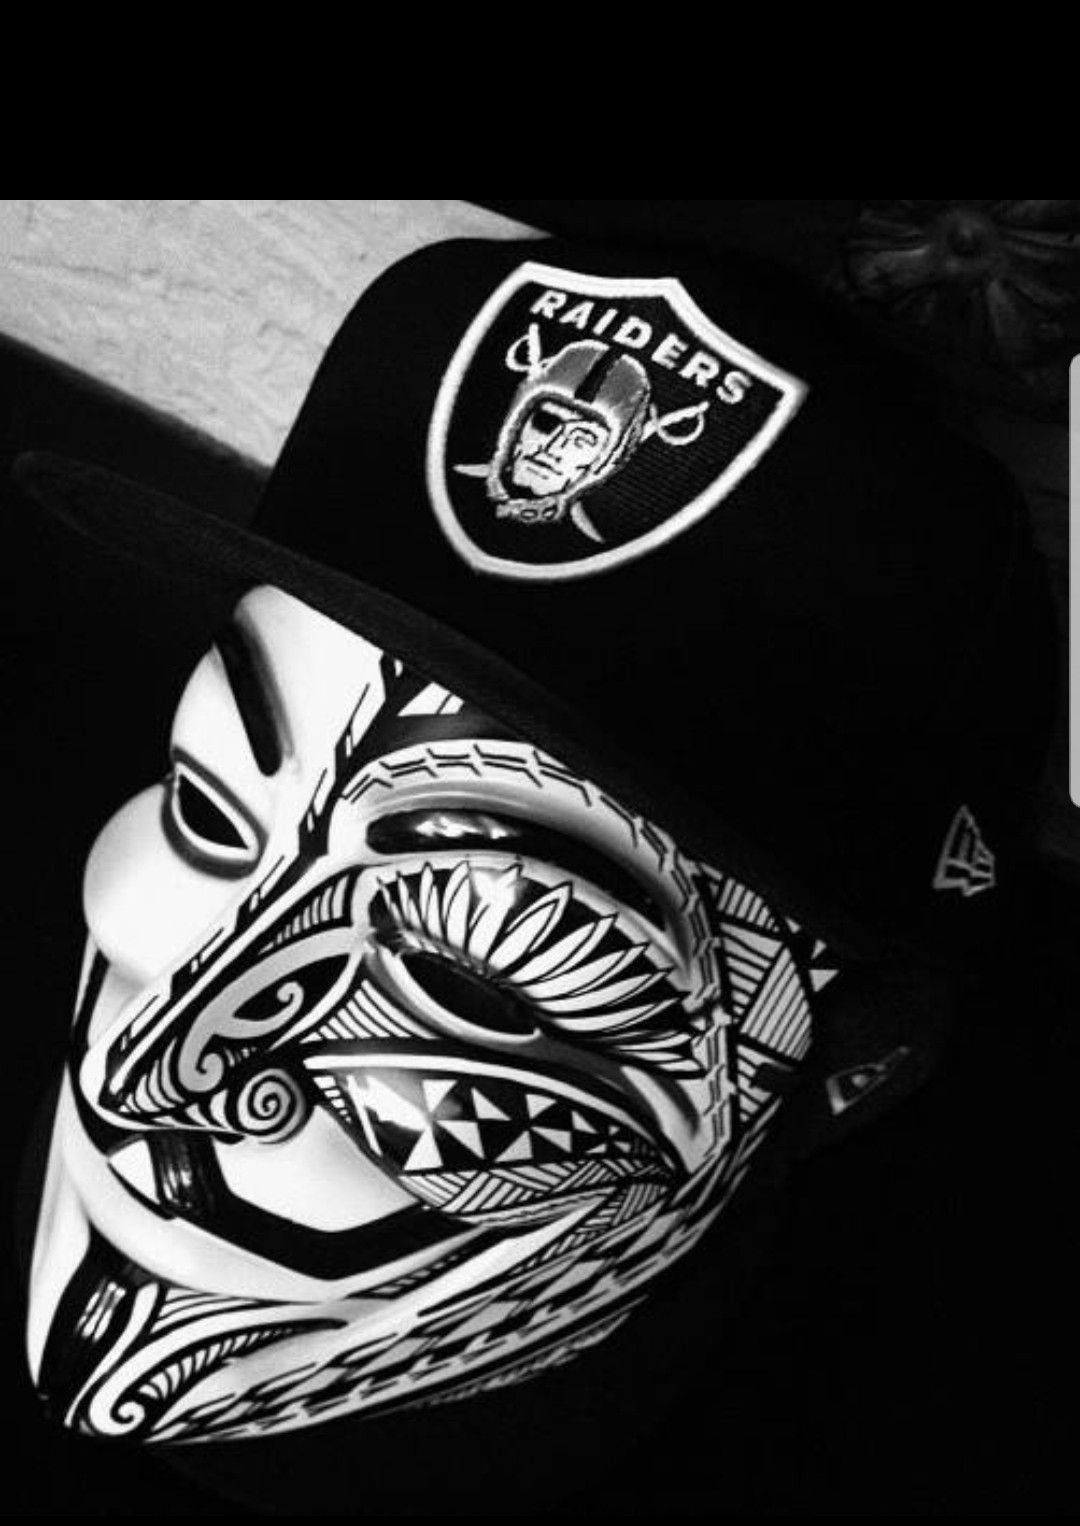 Pin by Patriot on Raider Nation Nfl raiders, Oakland